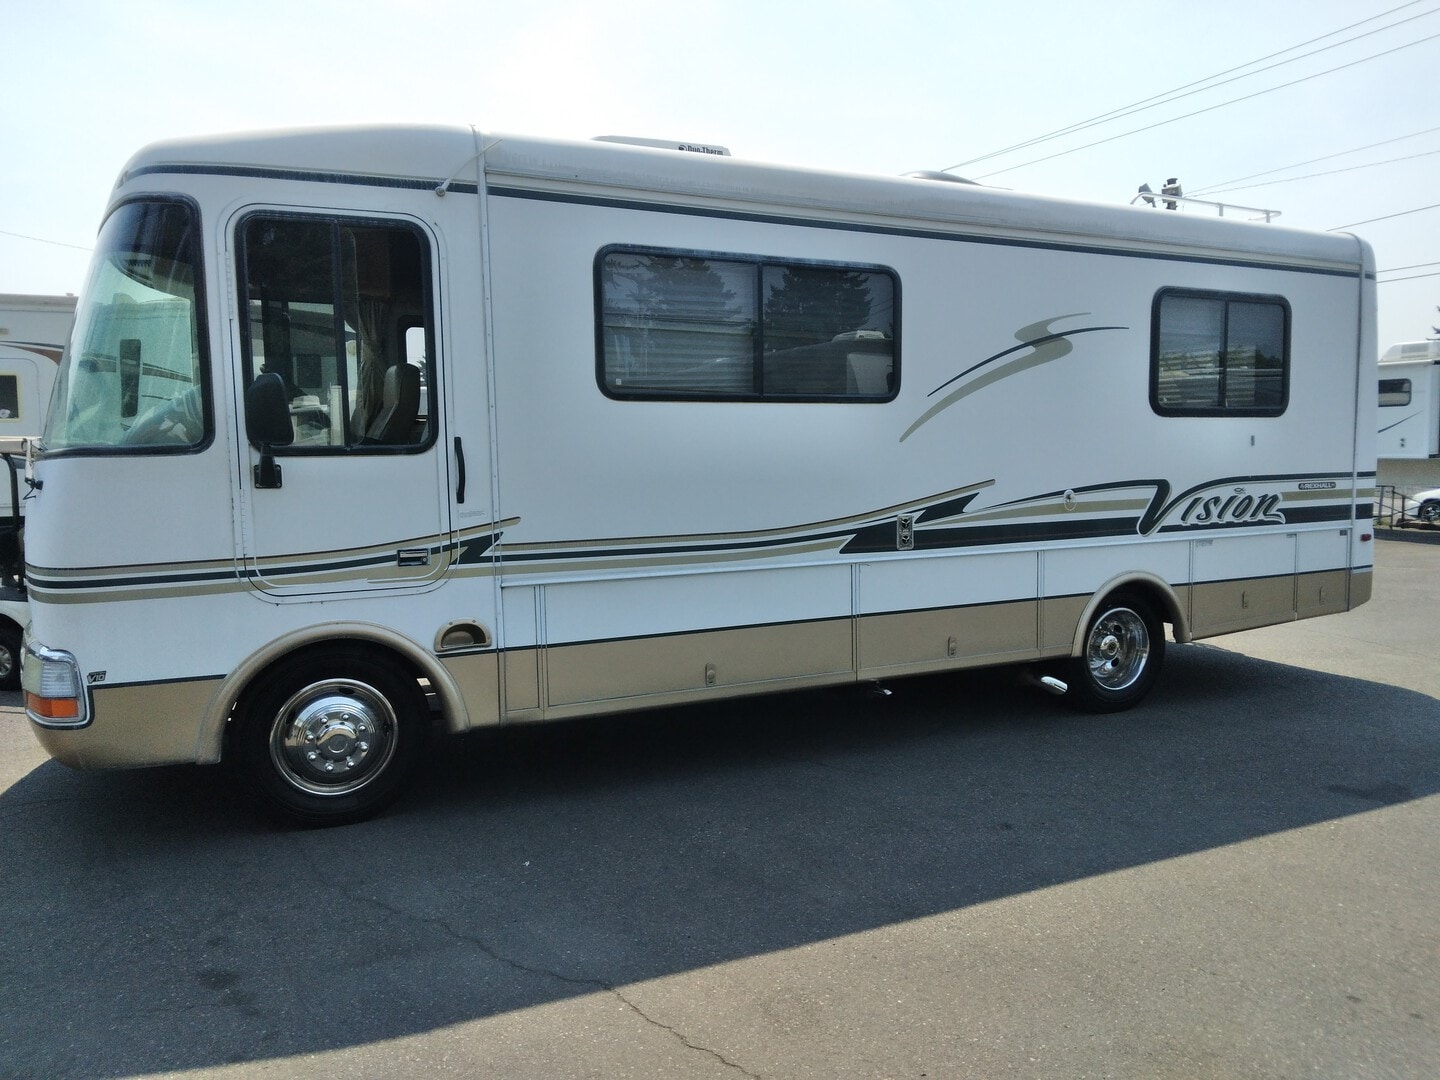 Used, 2001, Rexhall, VW0915, RV - Class A